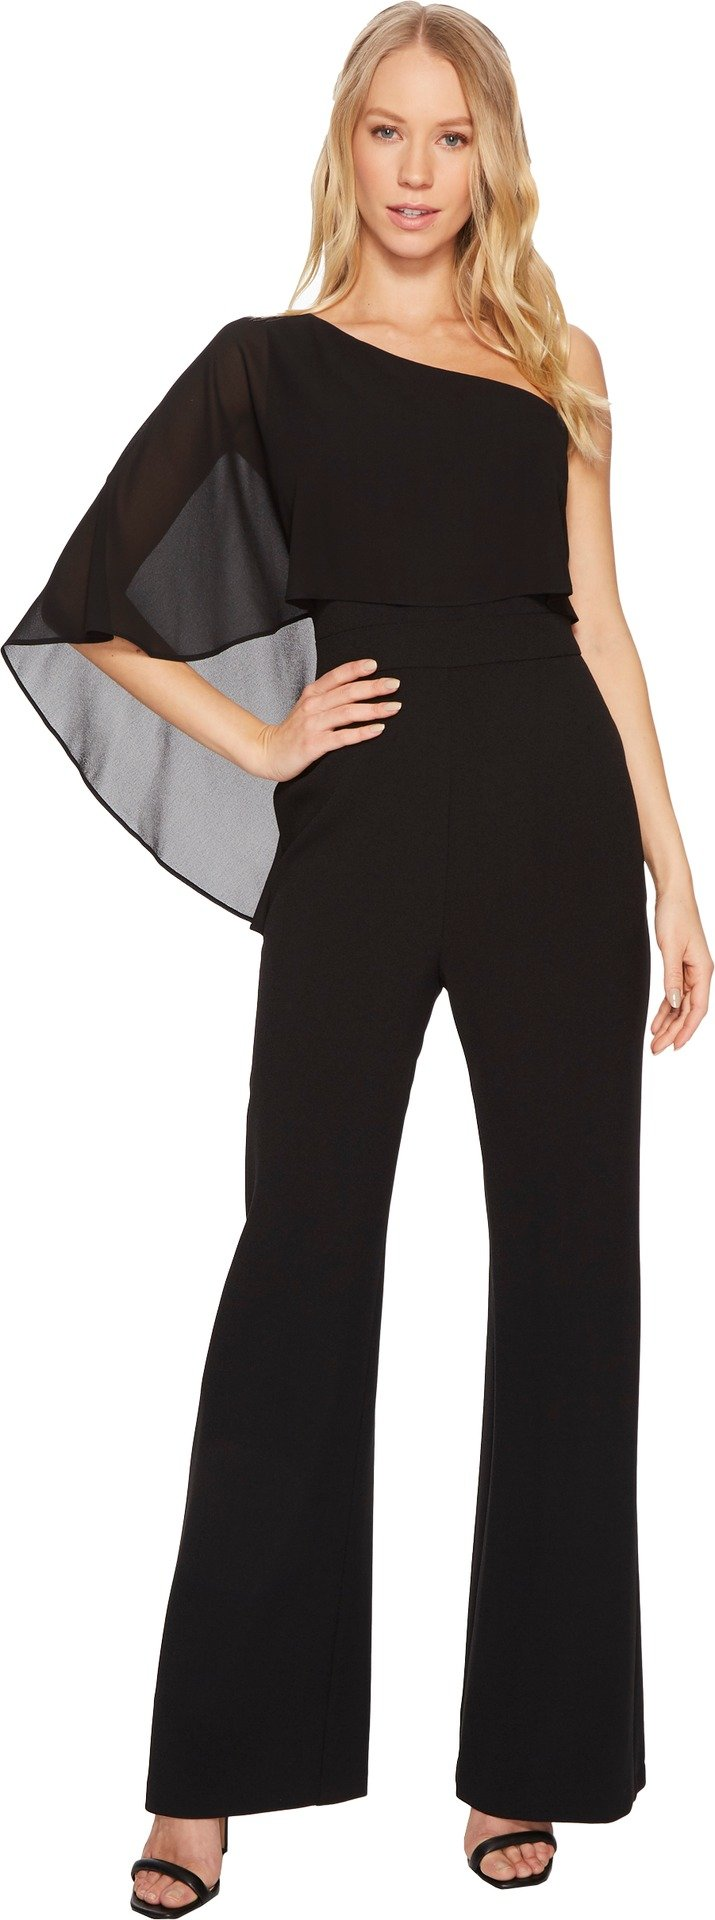 Vince Camuto Women's One Shoulder Crepe Jumpsuit With Chiffon Overlay Black 4